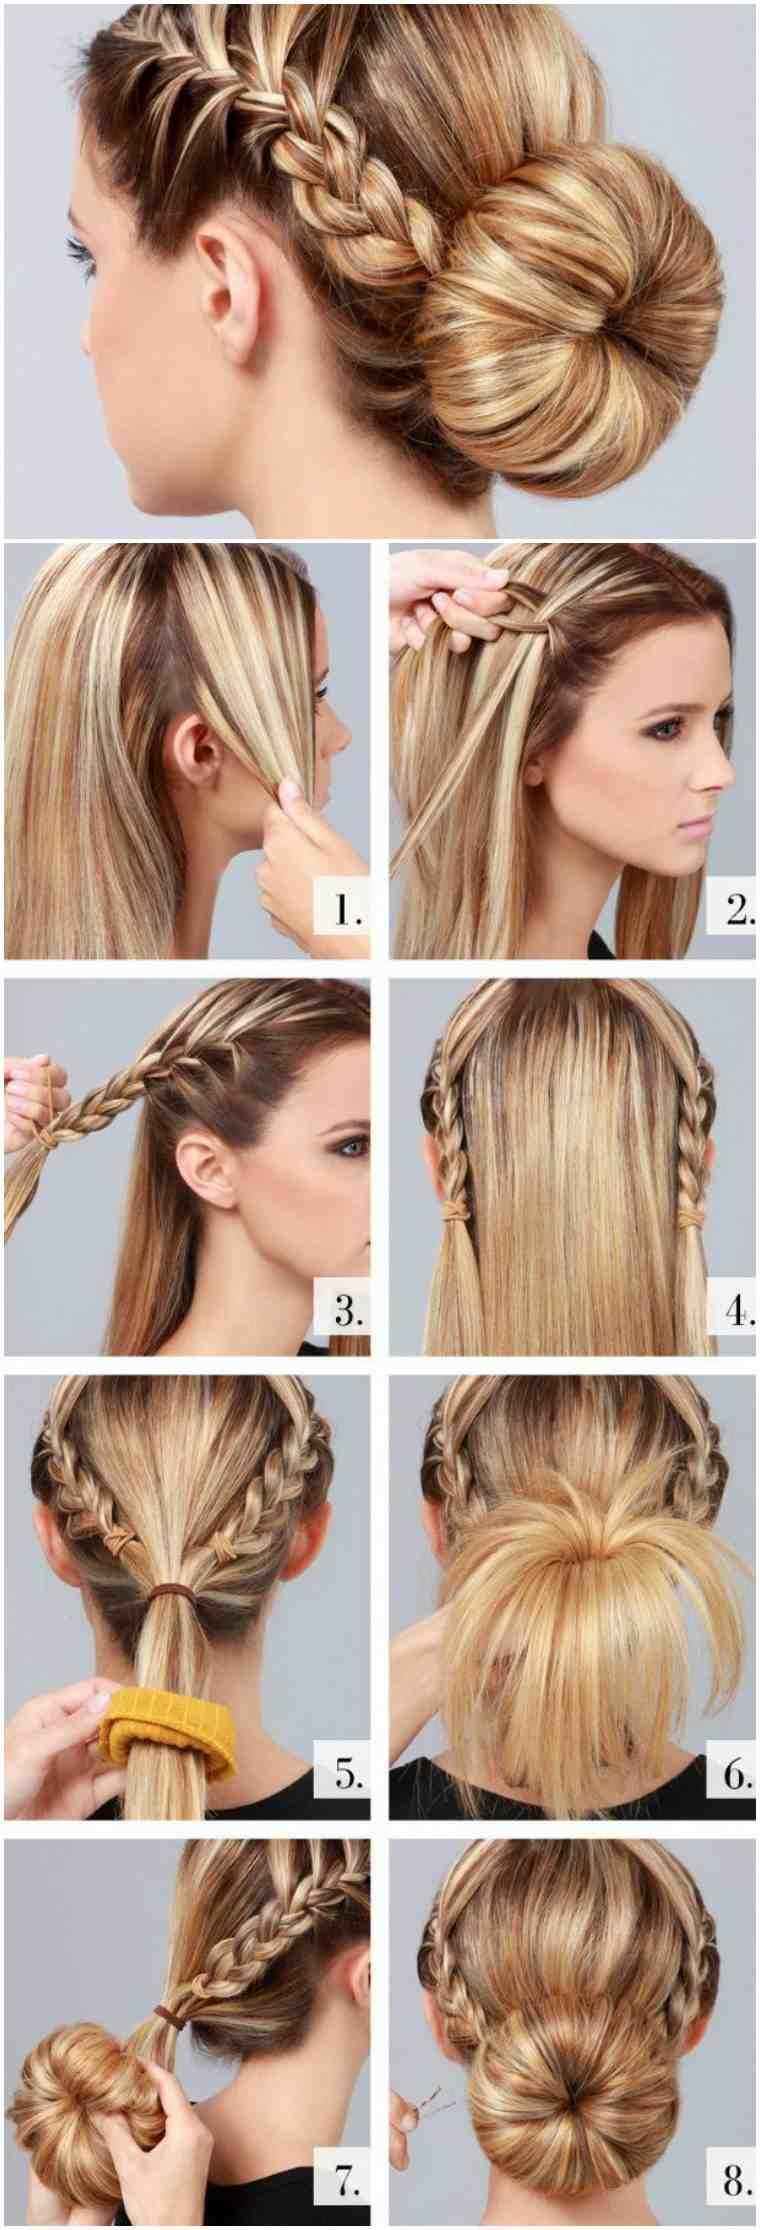 Make evening hairstyles yourself tips and tricks for an